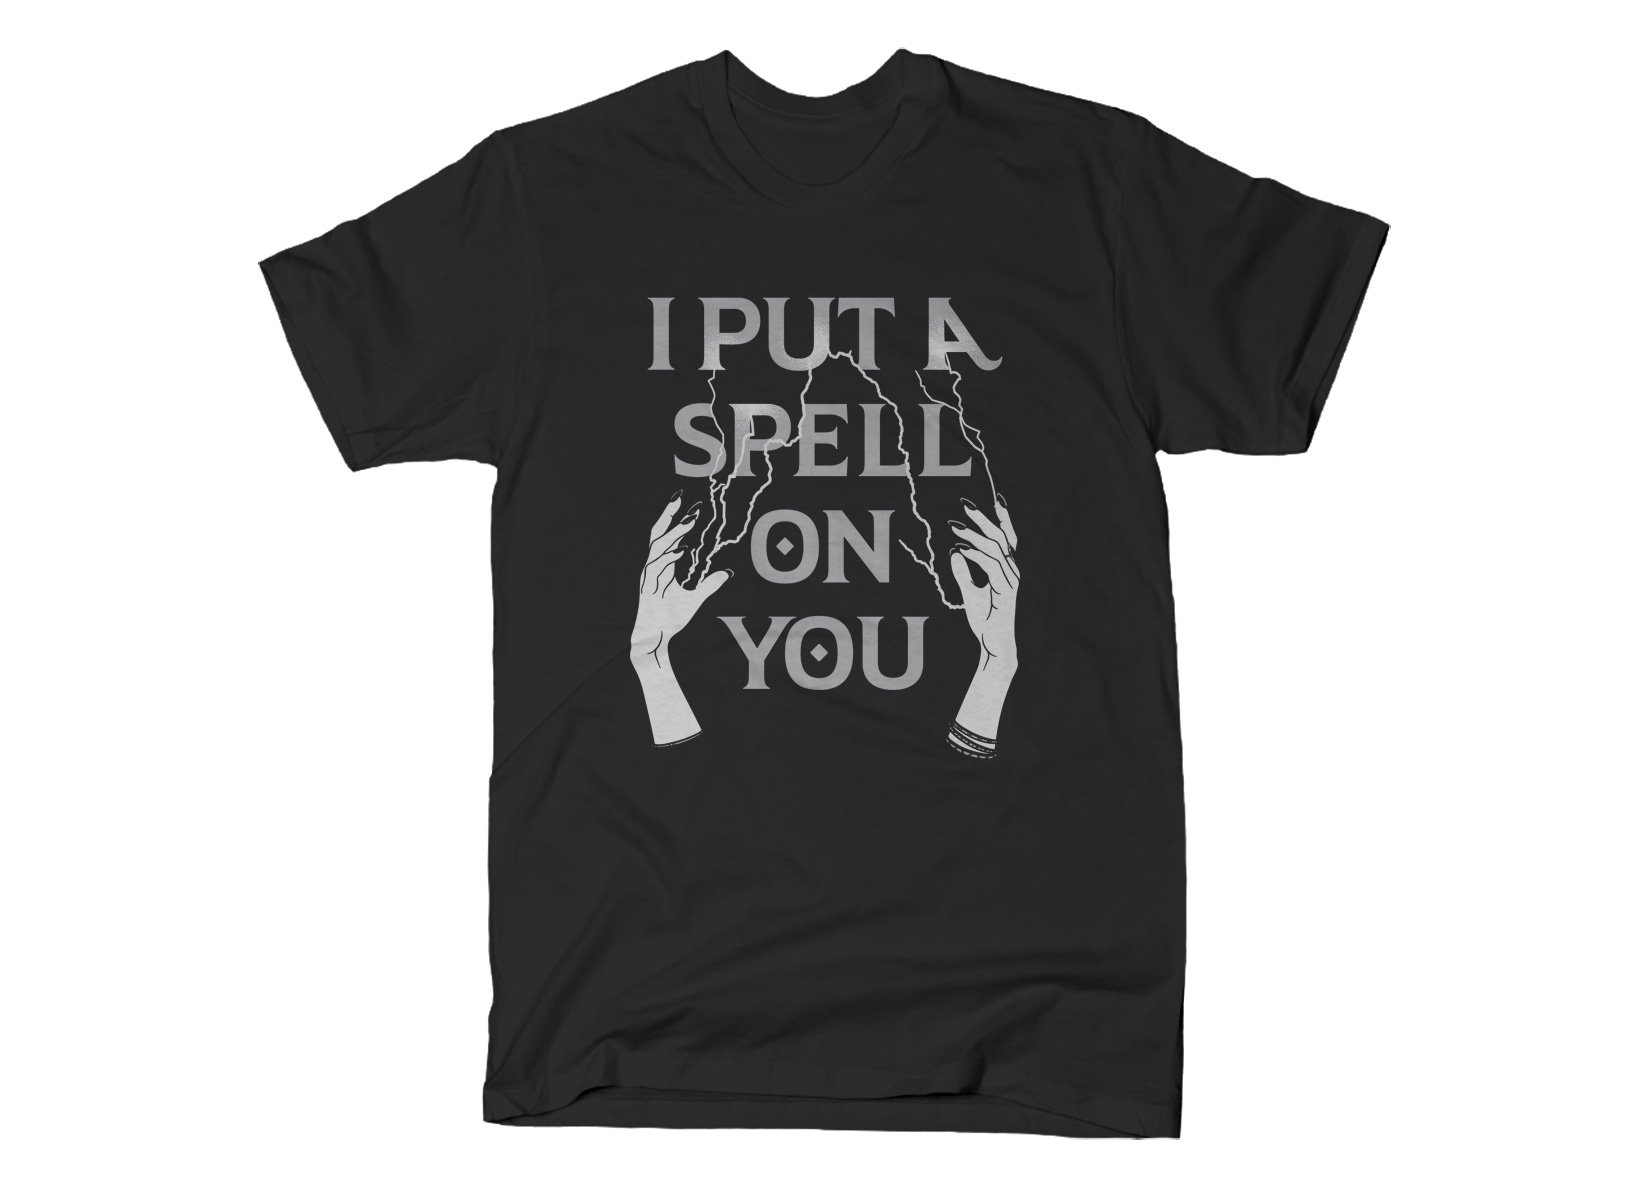 I Put A Spell On You on Mens T-Shirt